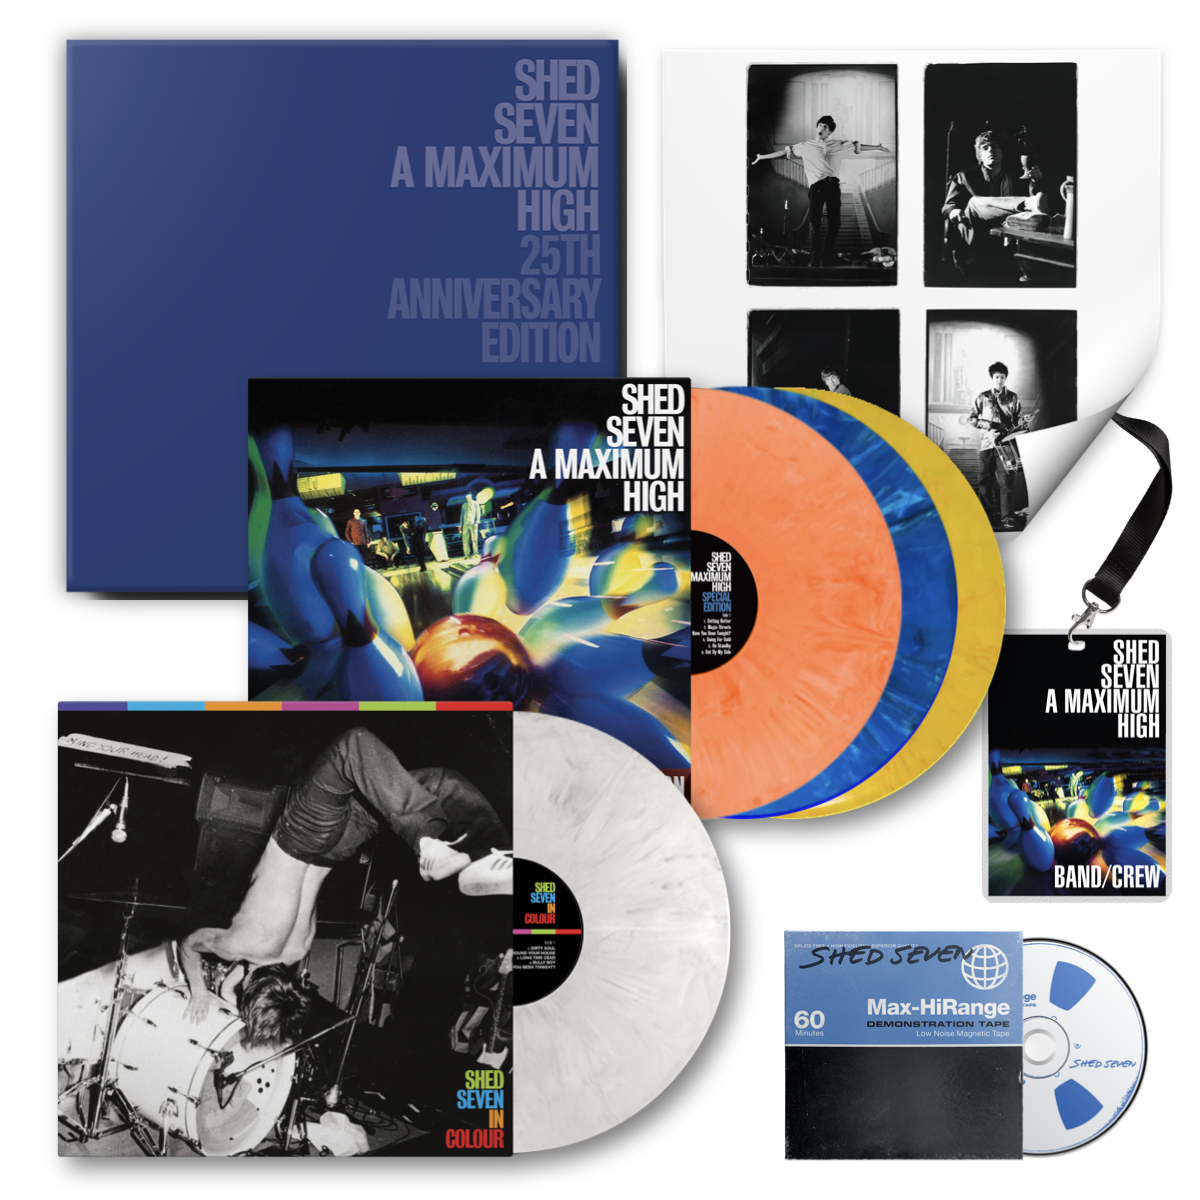 Buy Online Shed Seven - A Maximum High 25th Anniversary Edition Boxset (Includes Signed Art Print)